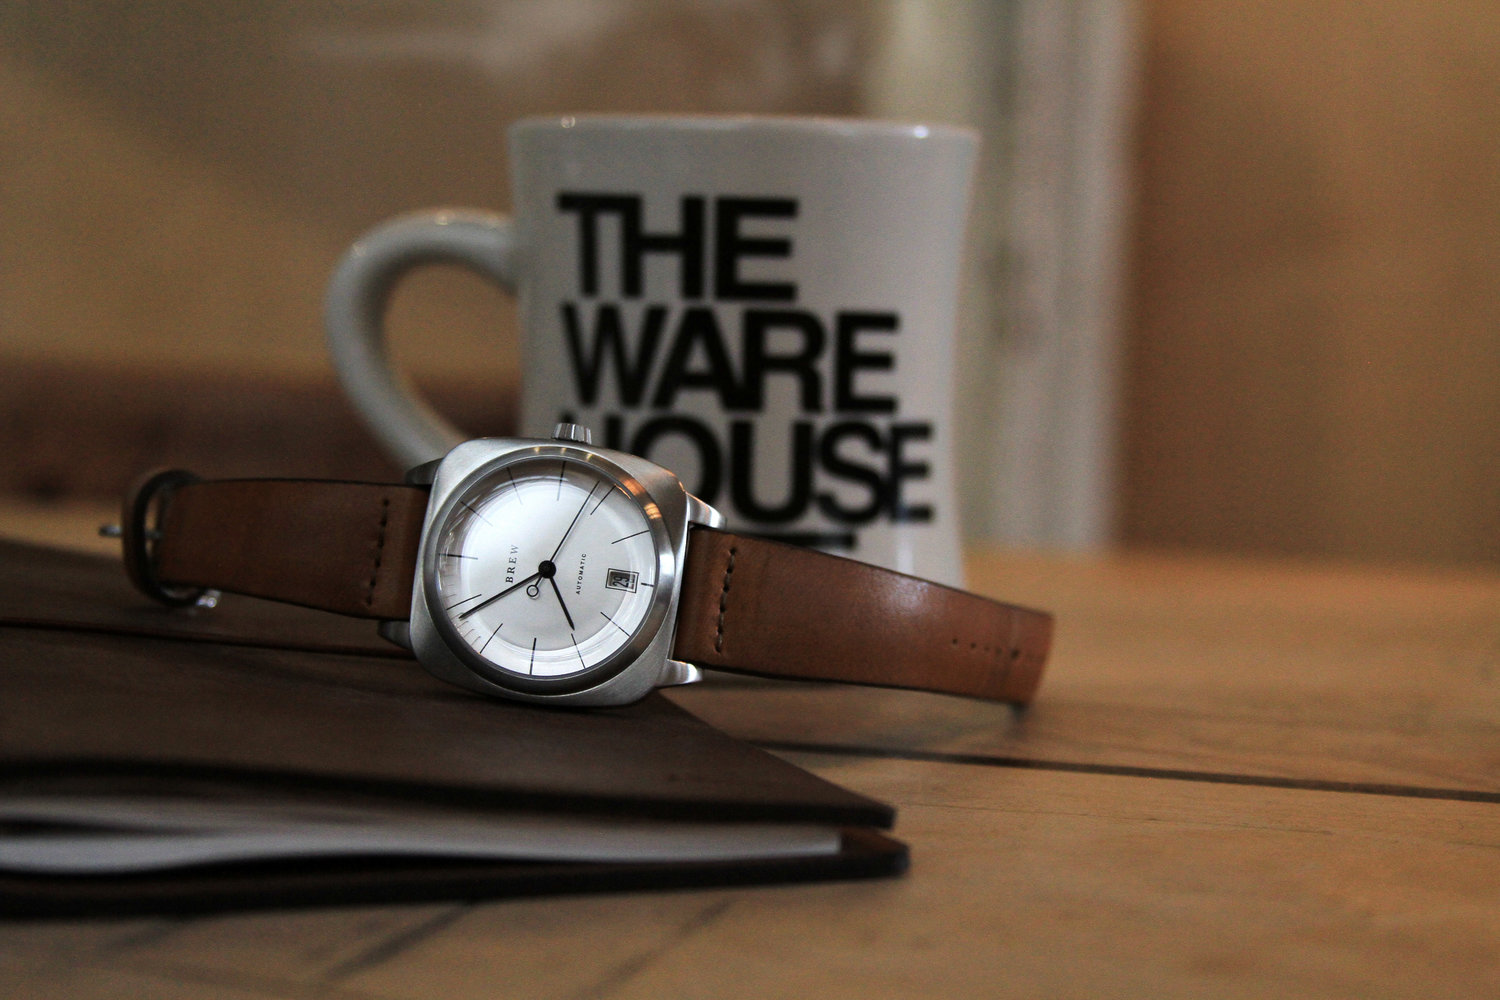 Warehouse+Cafe+SS+01.jpg